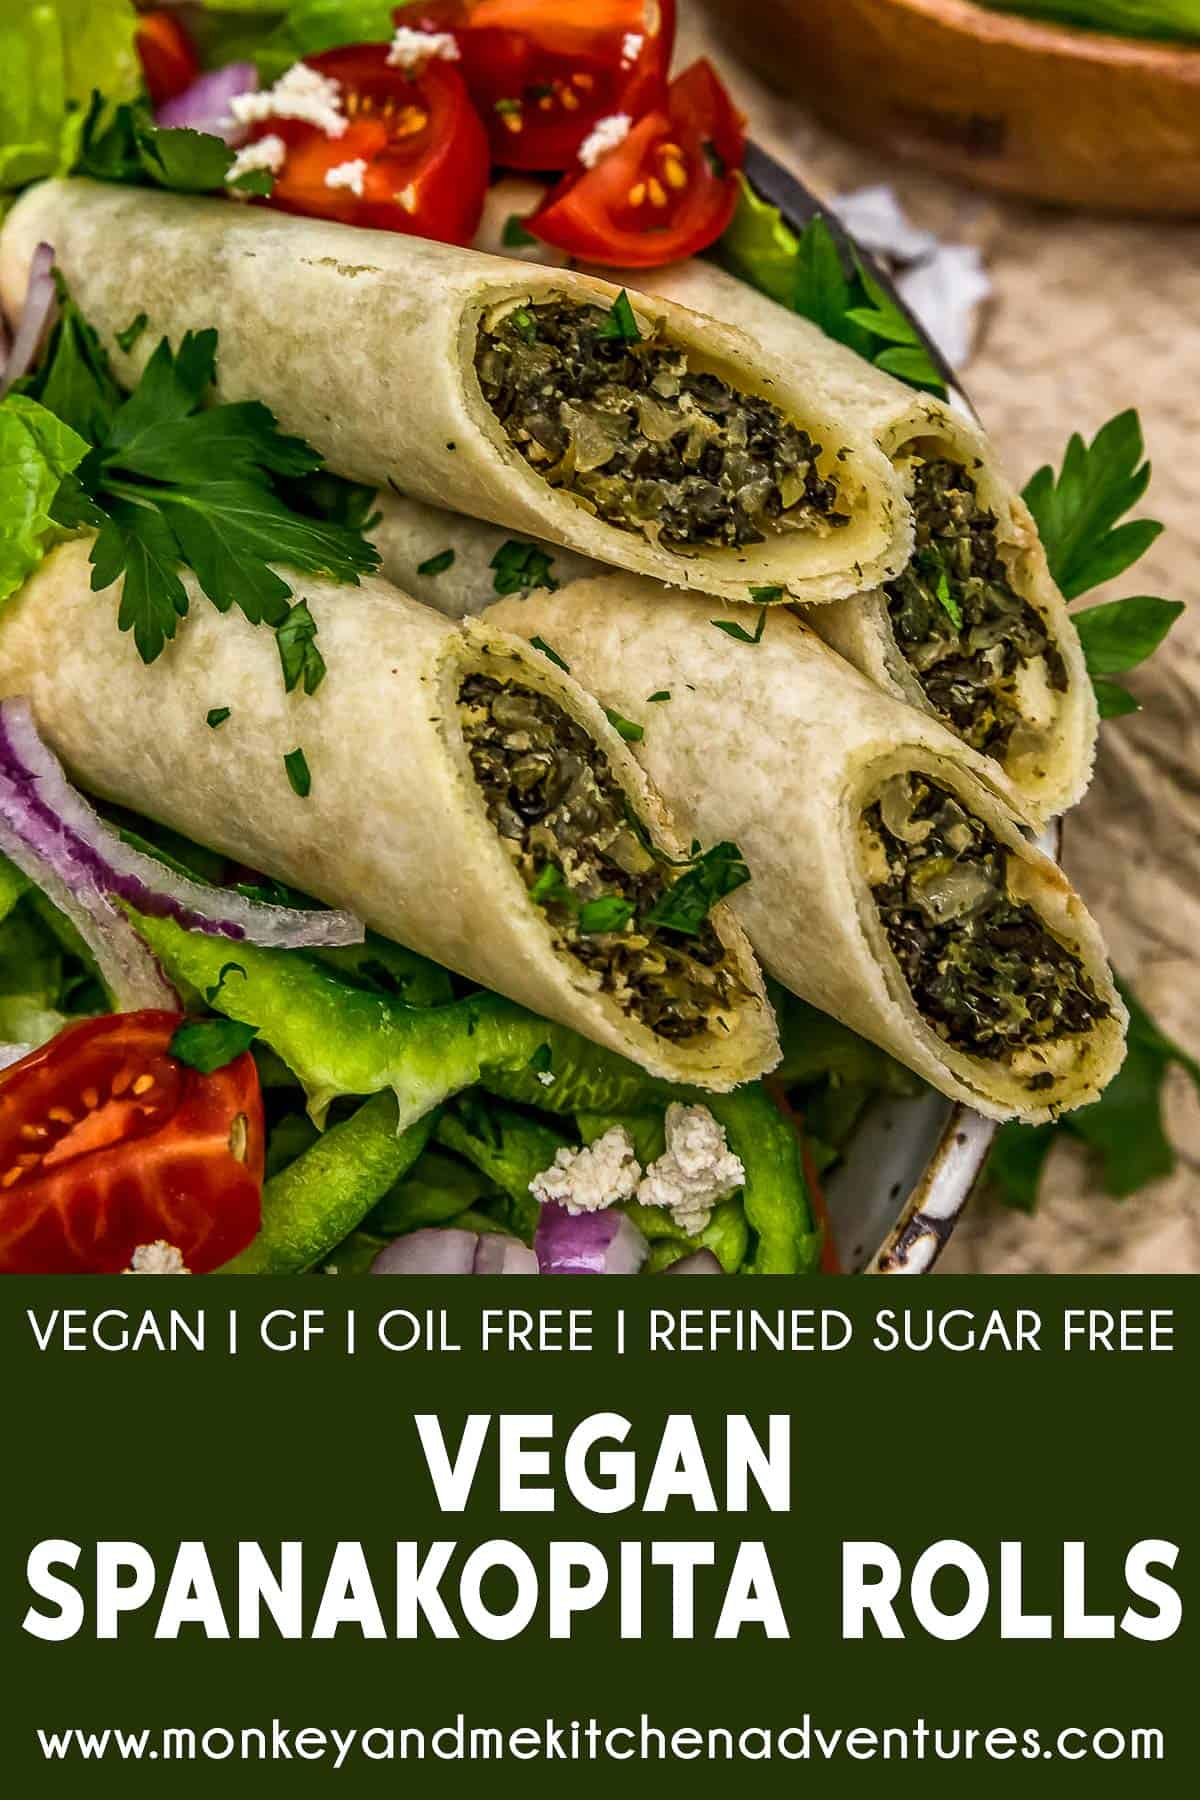 Vegan Spanakopita Rolls with text description